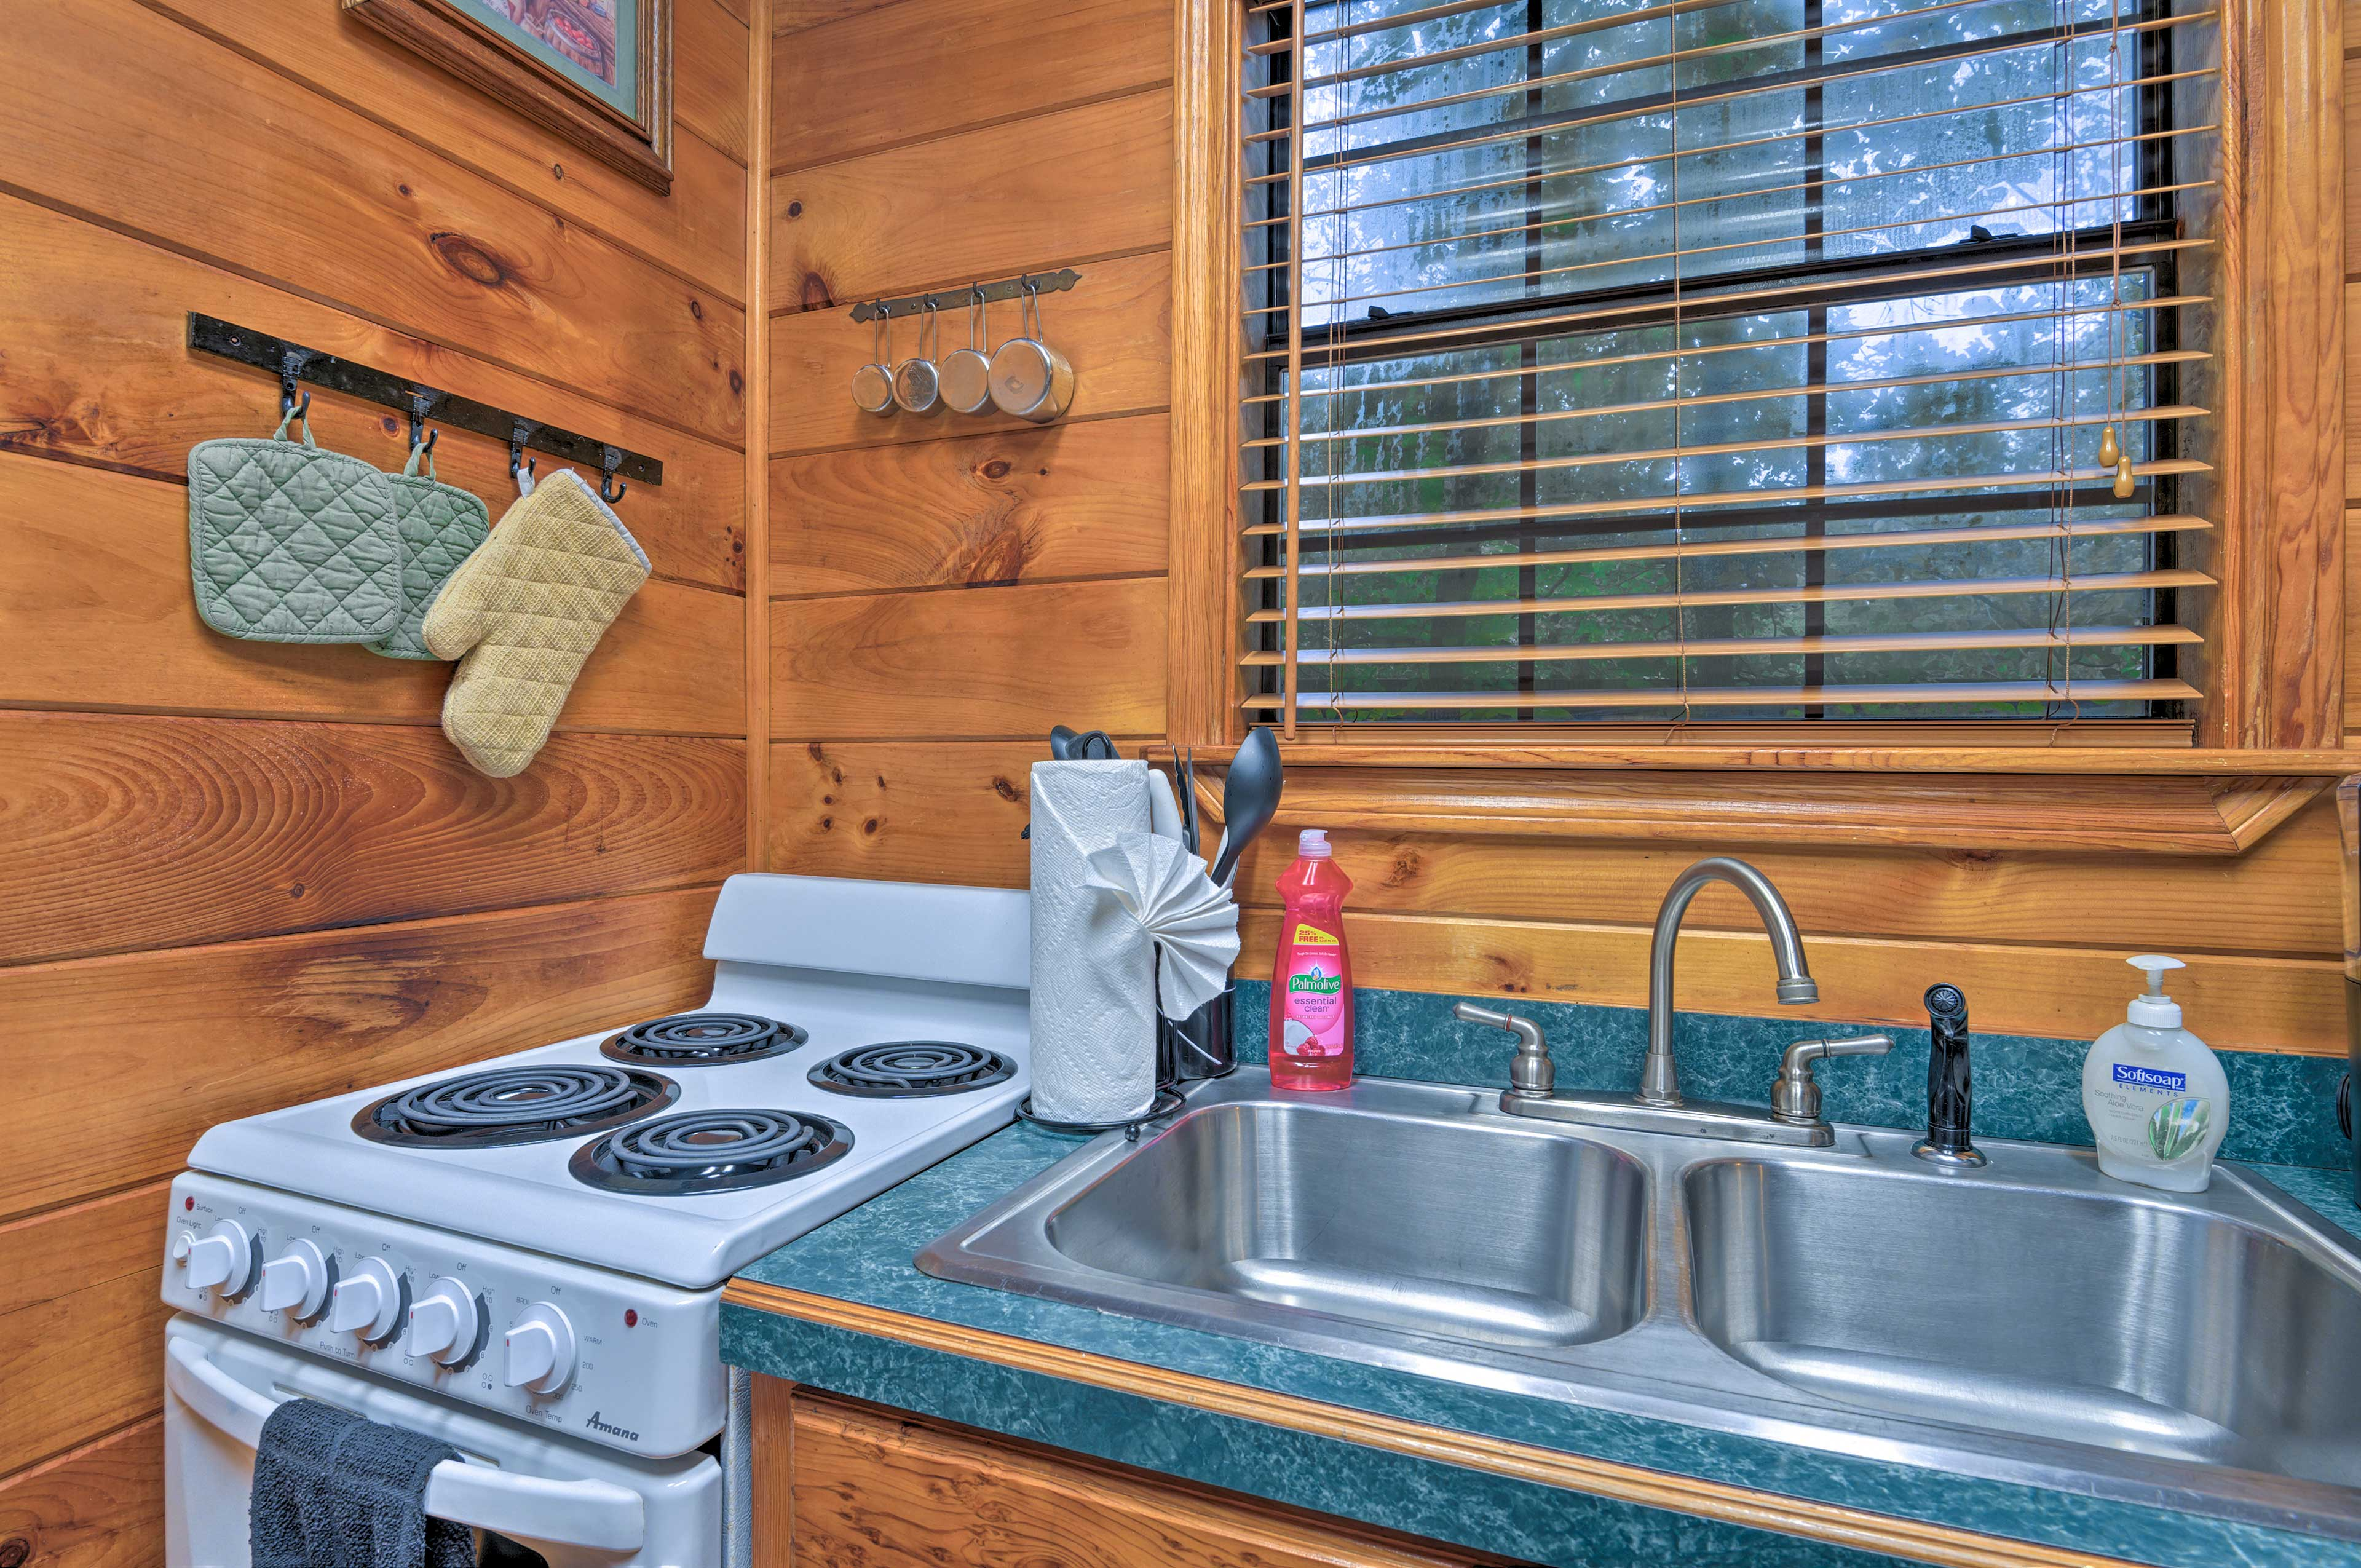 Well equipped, the kitchen features a full fridge and stove/oven.